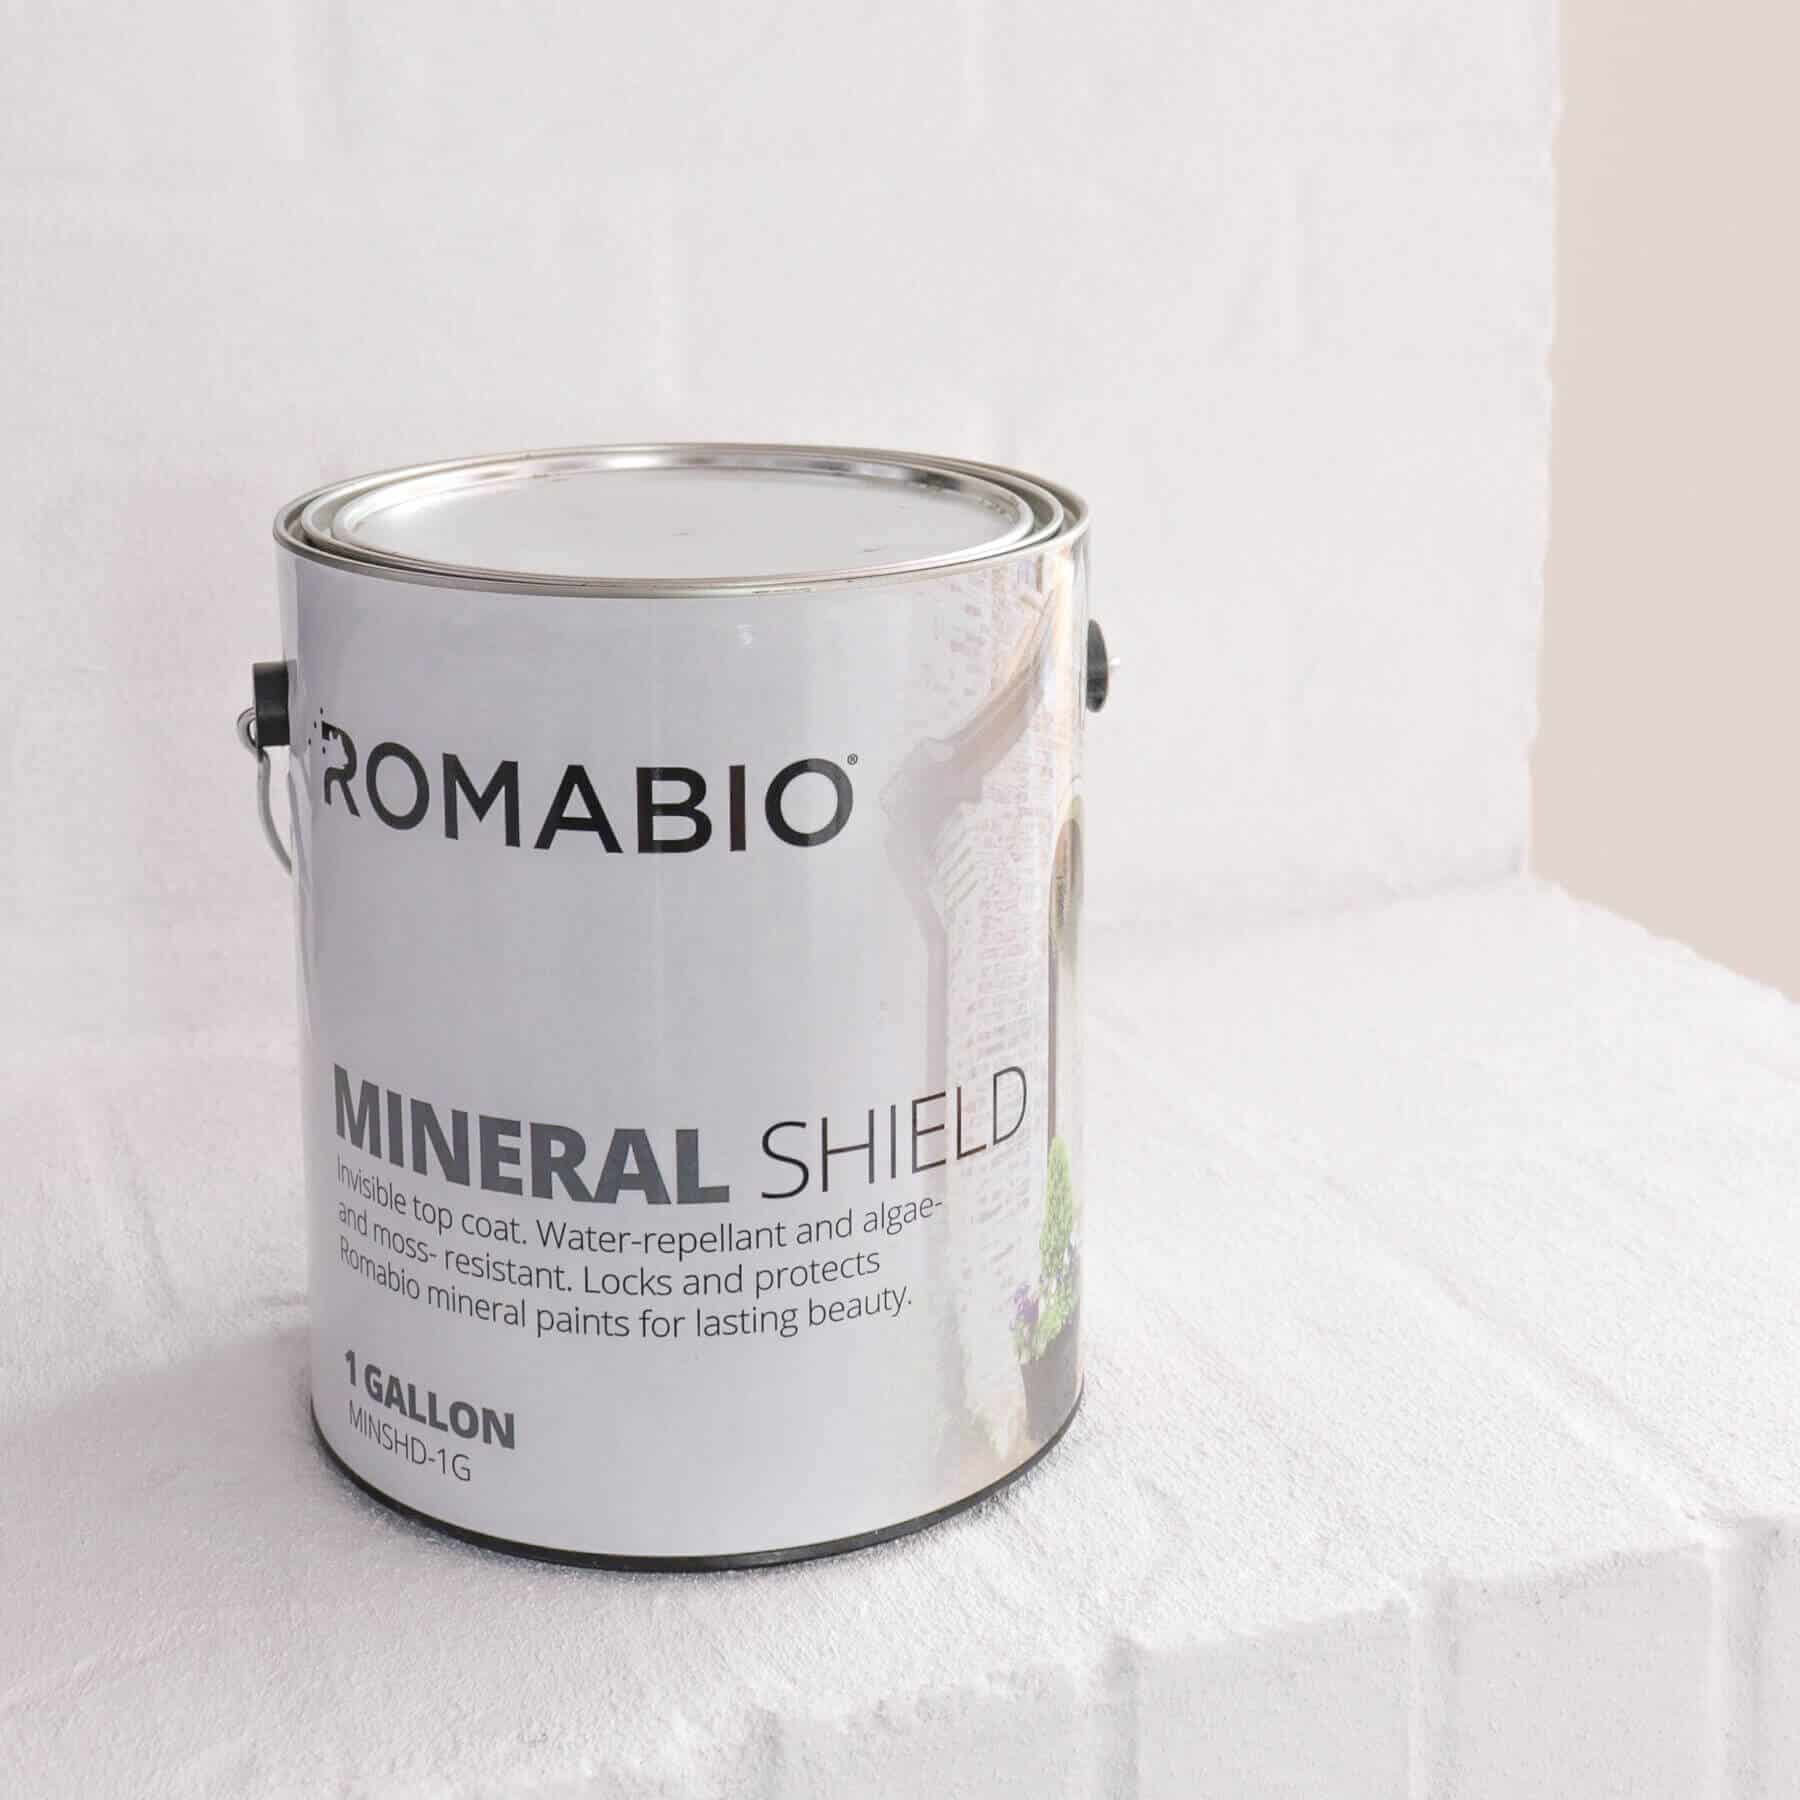 Romabio Mineral Shield can sitting on a lime slurry fireplace